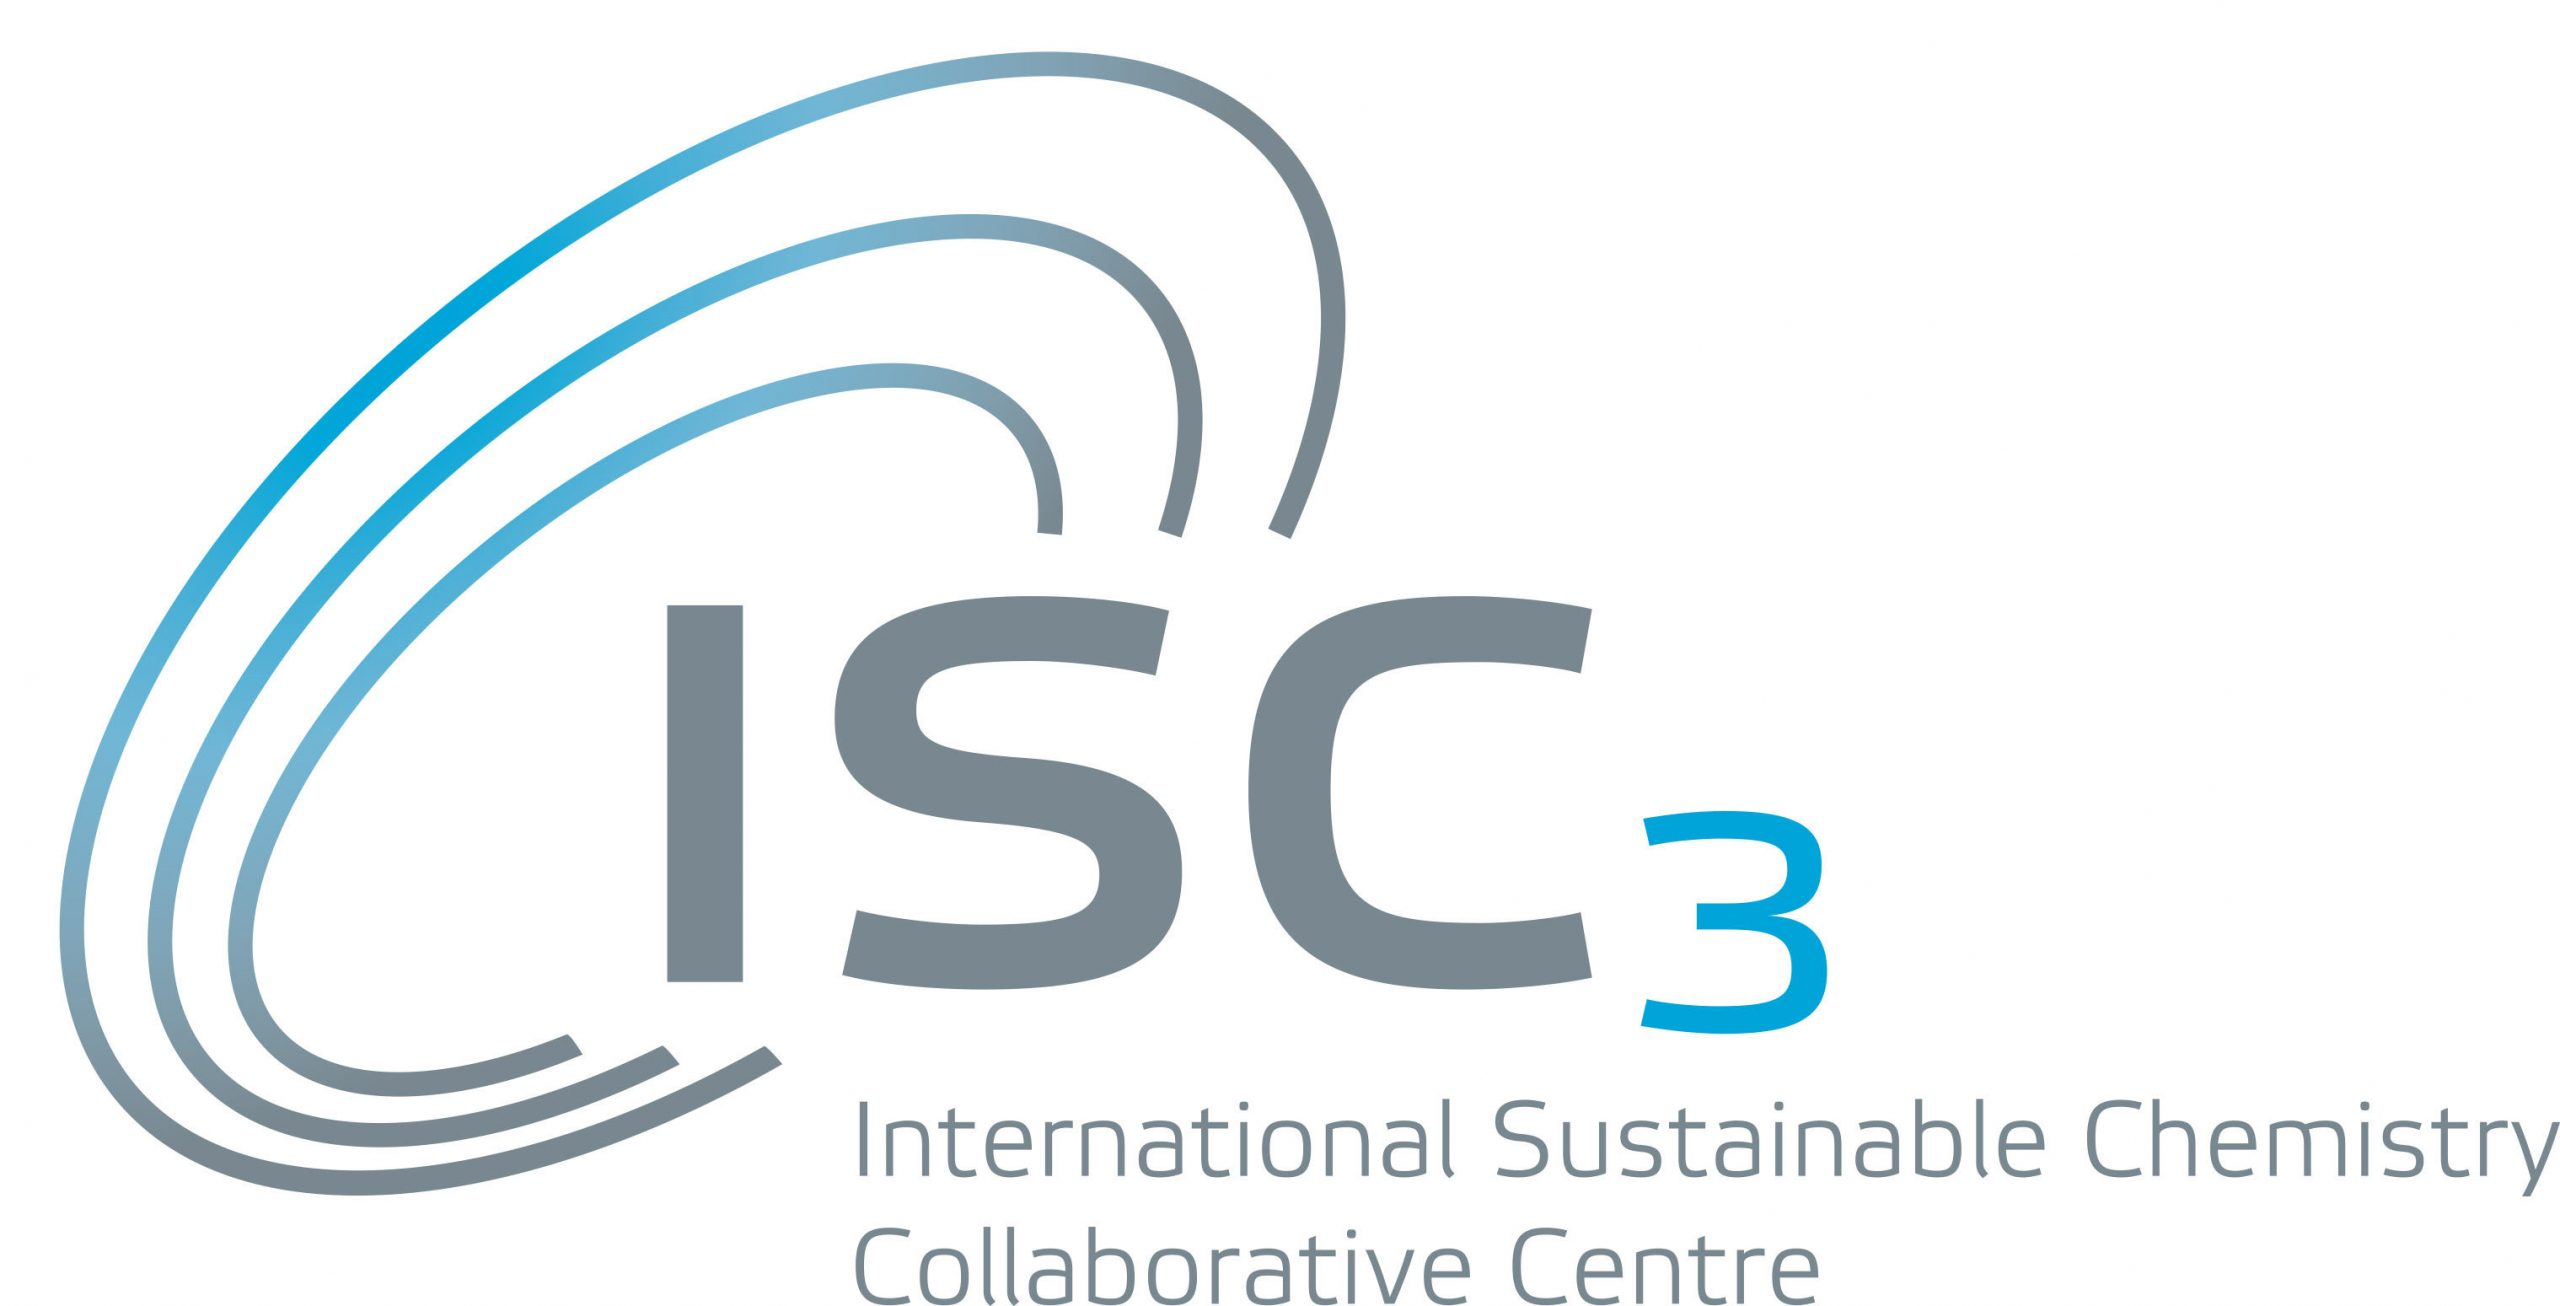 Logo ISC3: internationale Plattform für den Stakeholderdialog in der Chemie